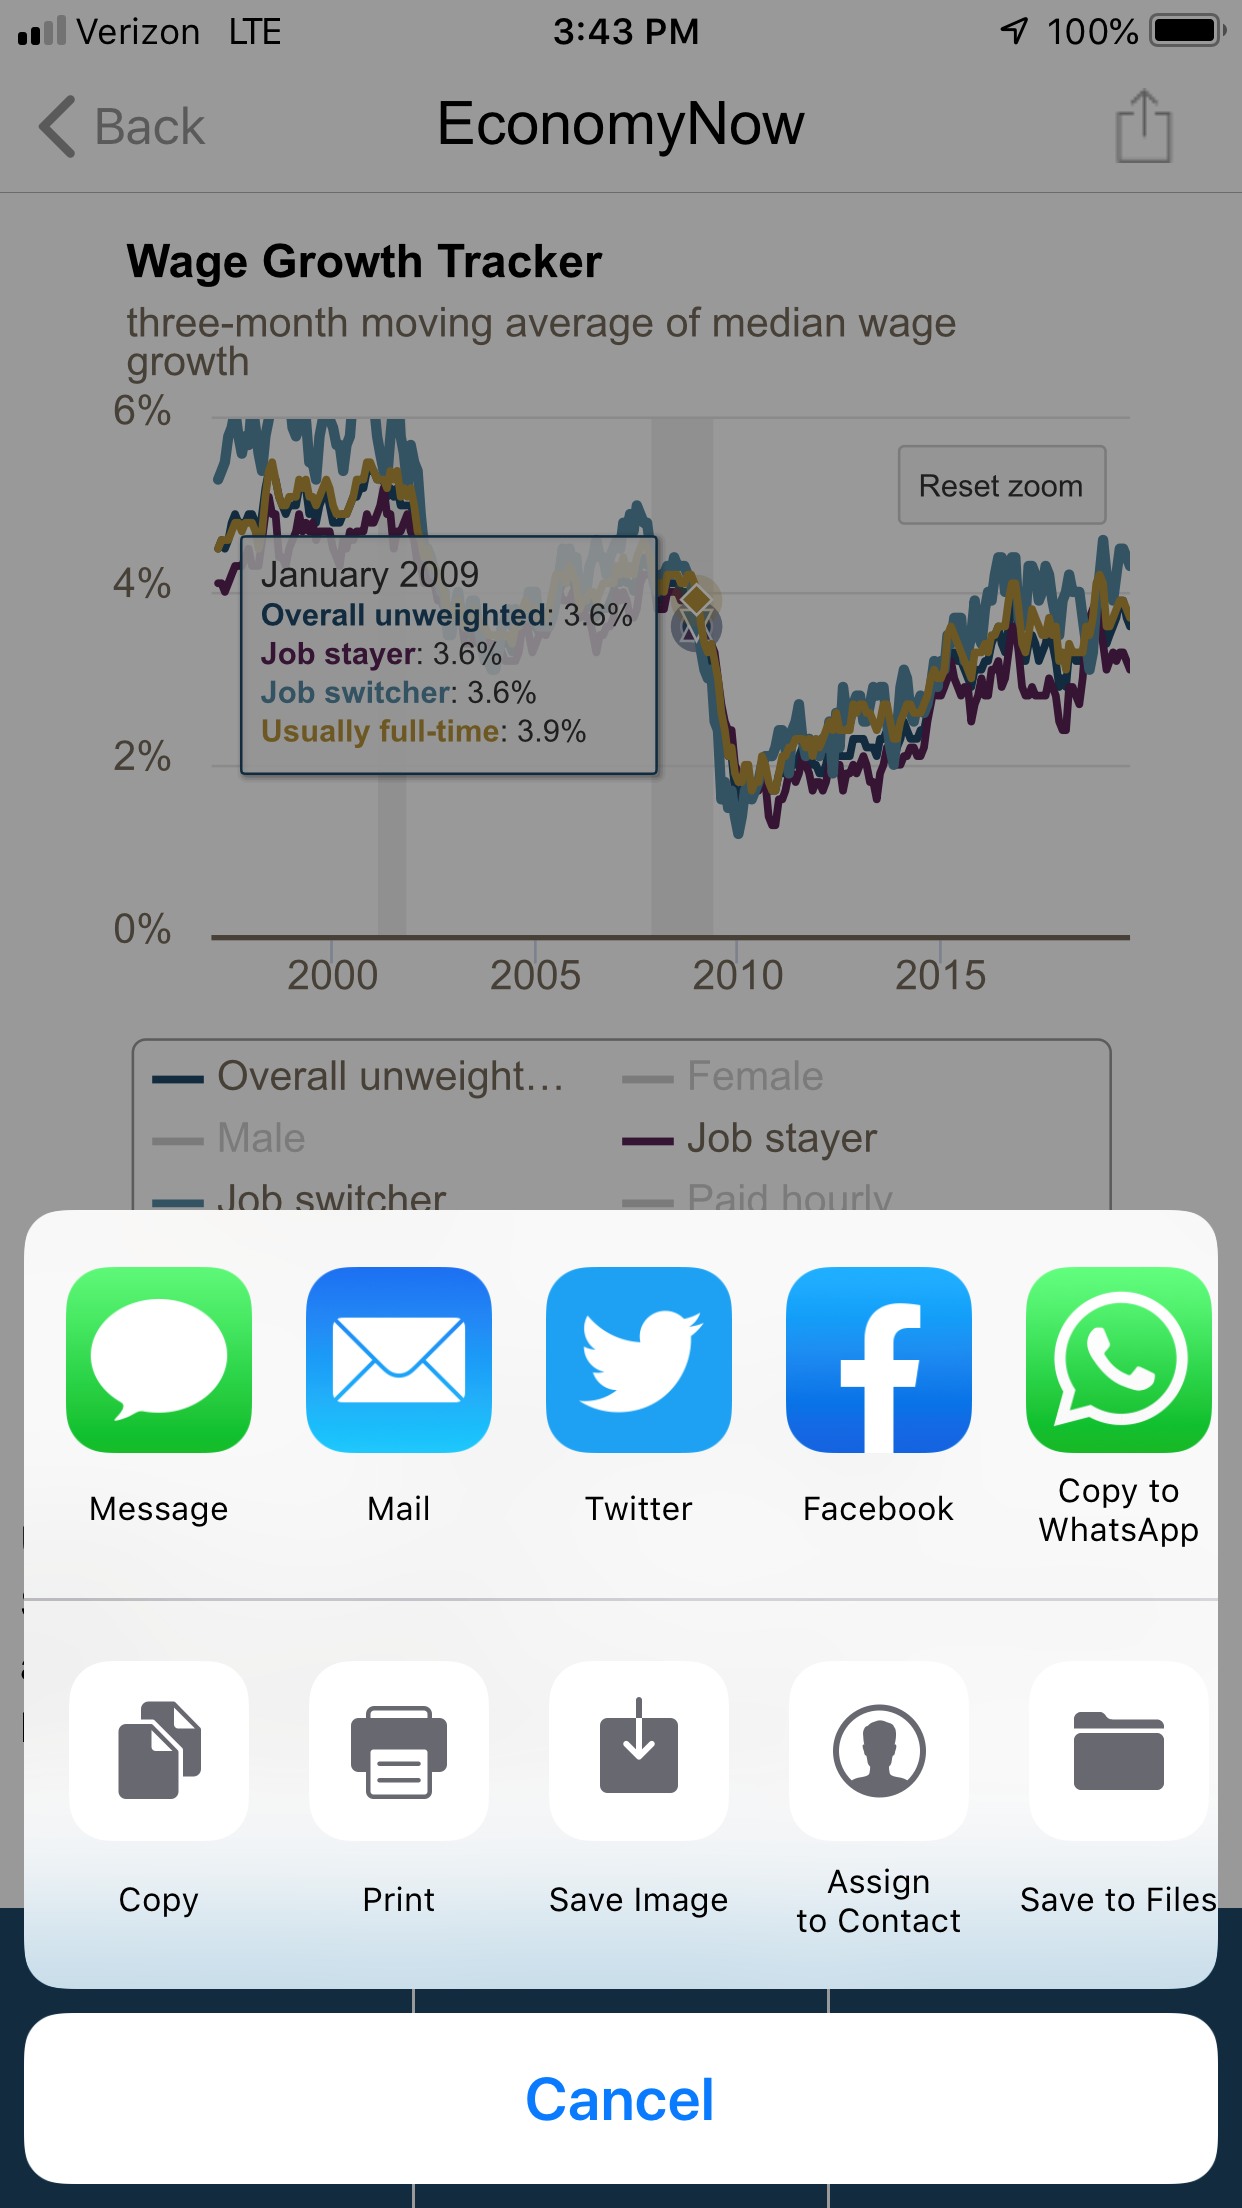 screenshot of the EconomyNow app showing how to share a chart